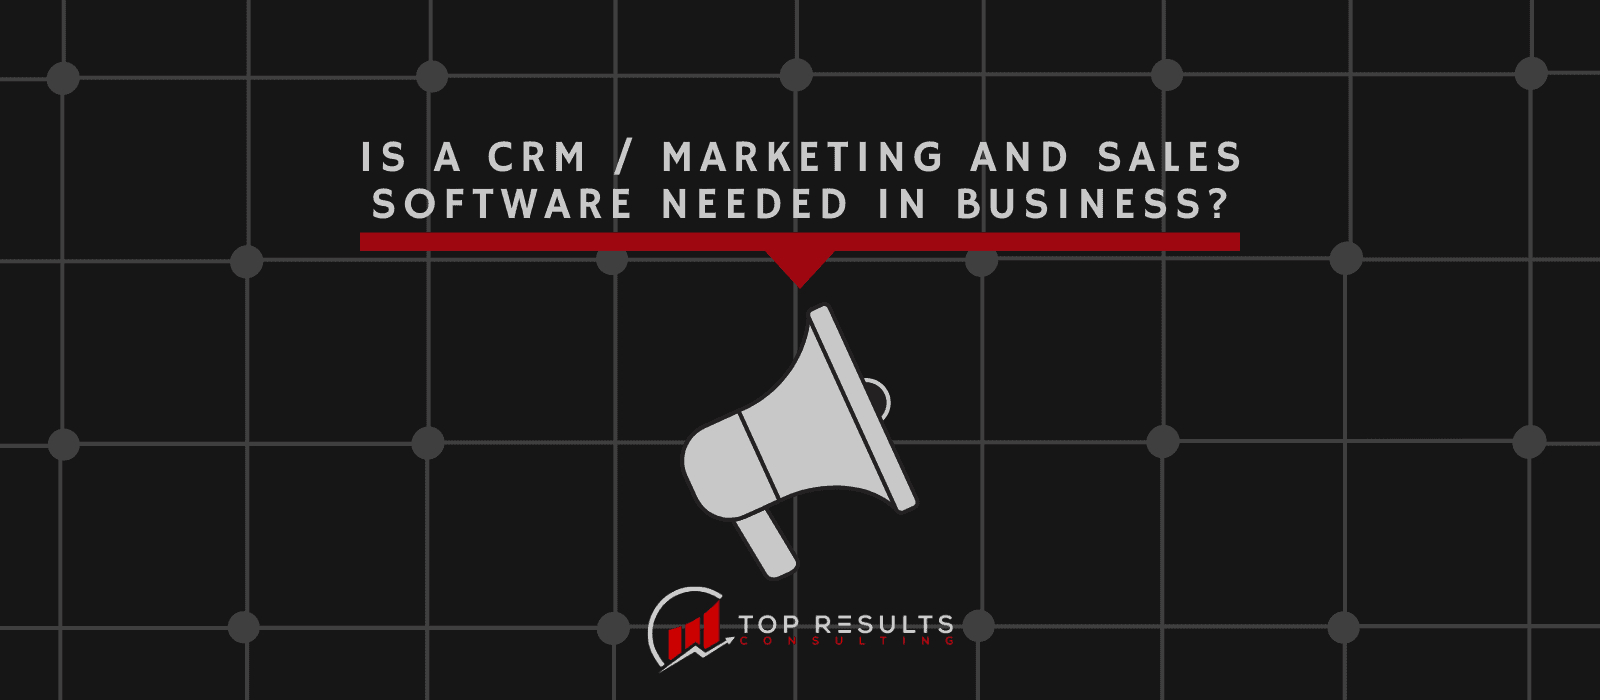 CRM / Marketing and Sales Software